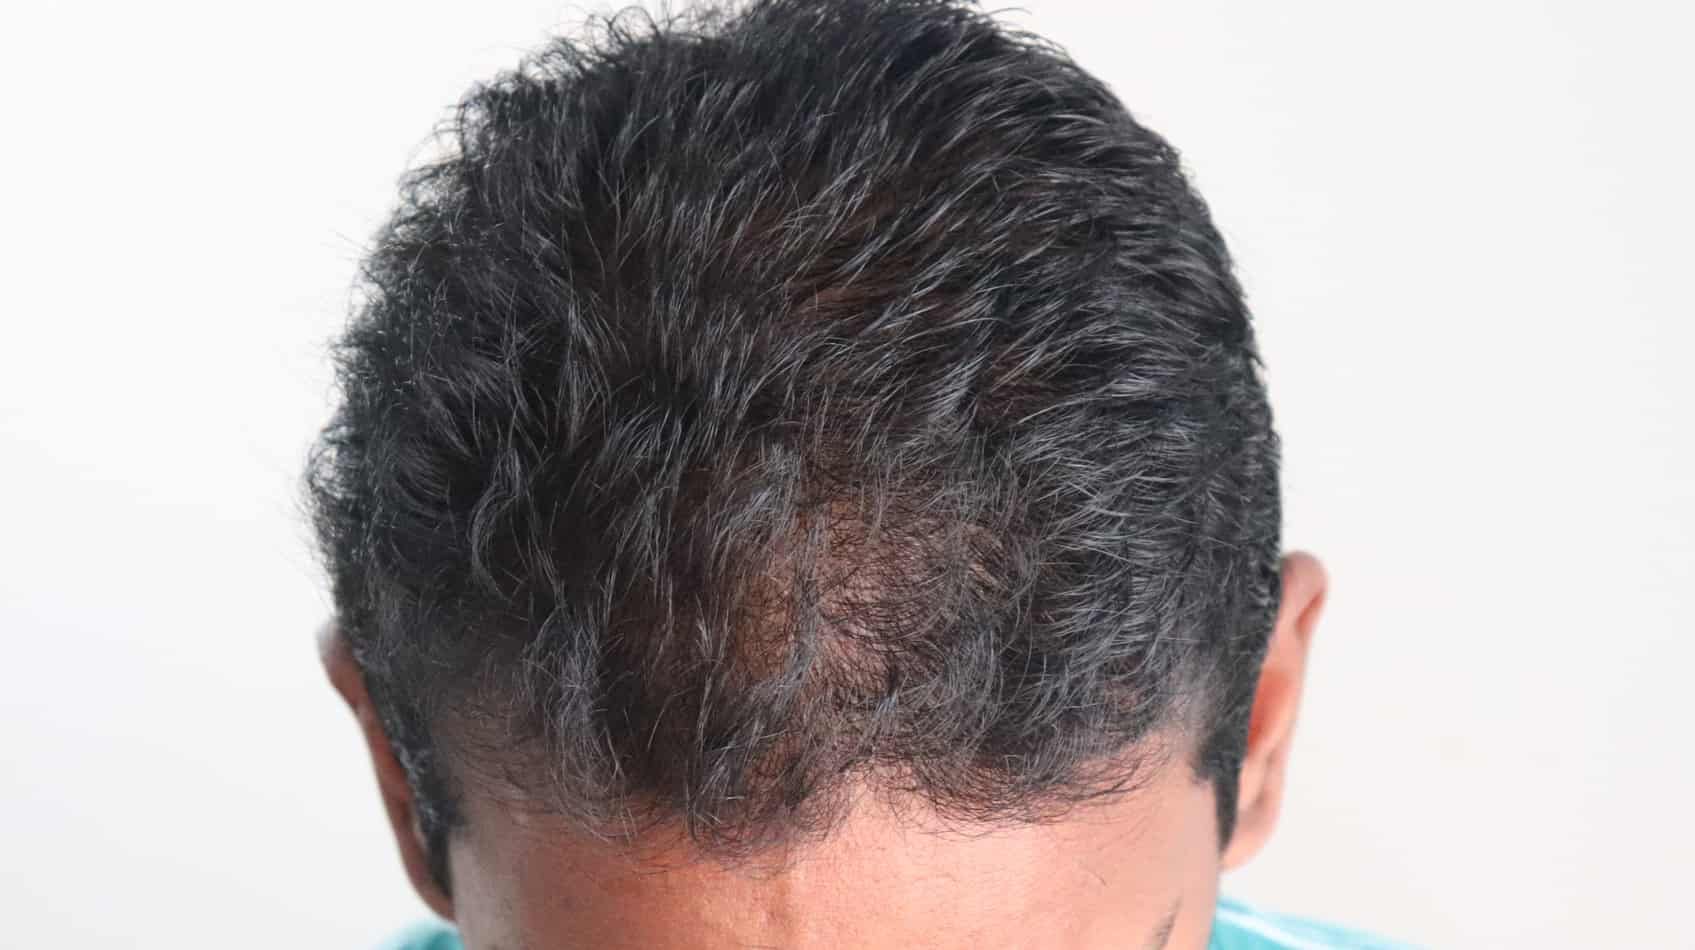 Hair thinning in front a sign of balding